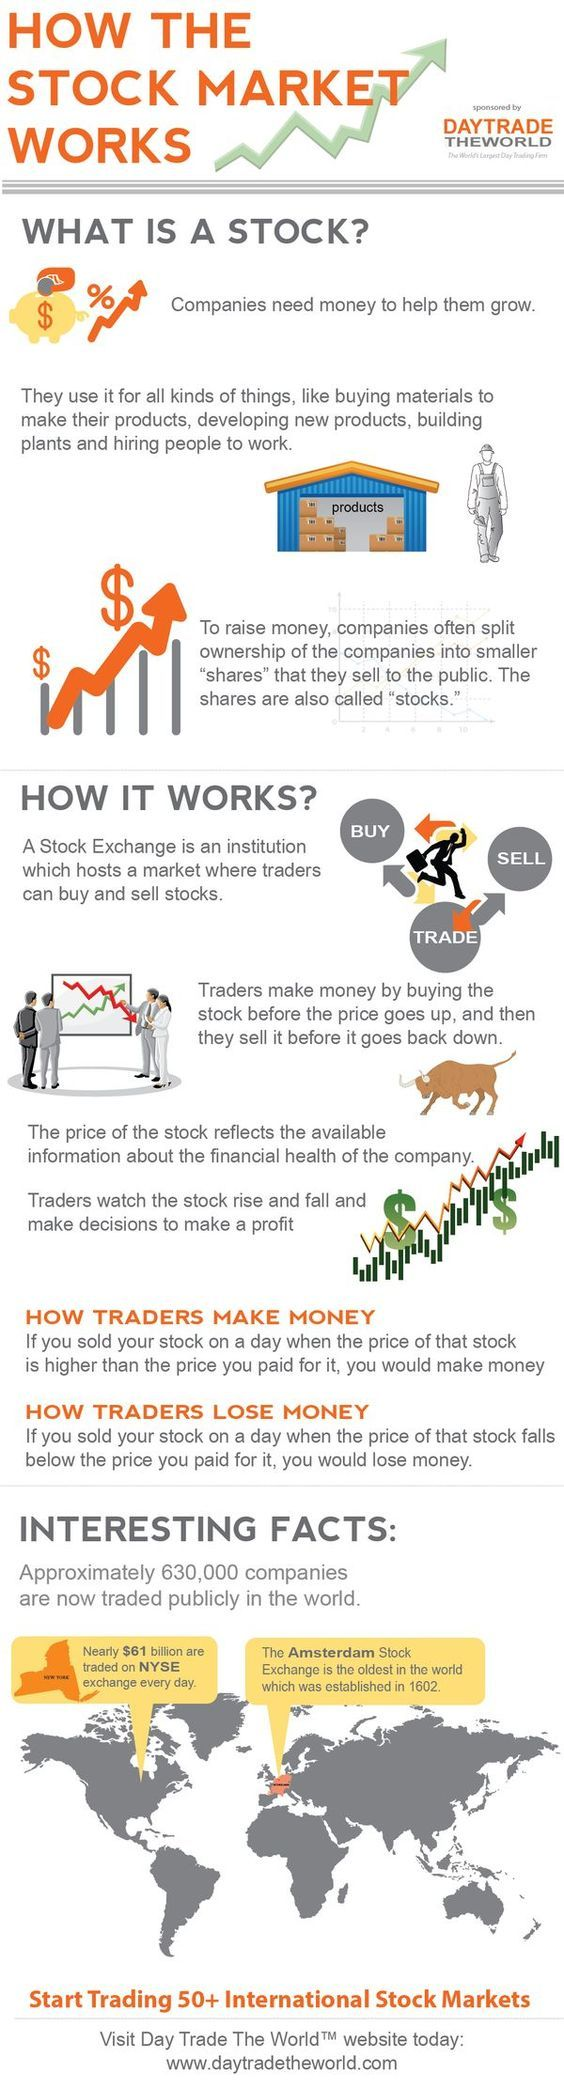 how-the-stock-market-works-infographic {More on Trading|Successful trading|Trade erfolgreich|FOREX-Trading|Forex-Analysis} on